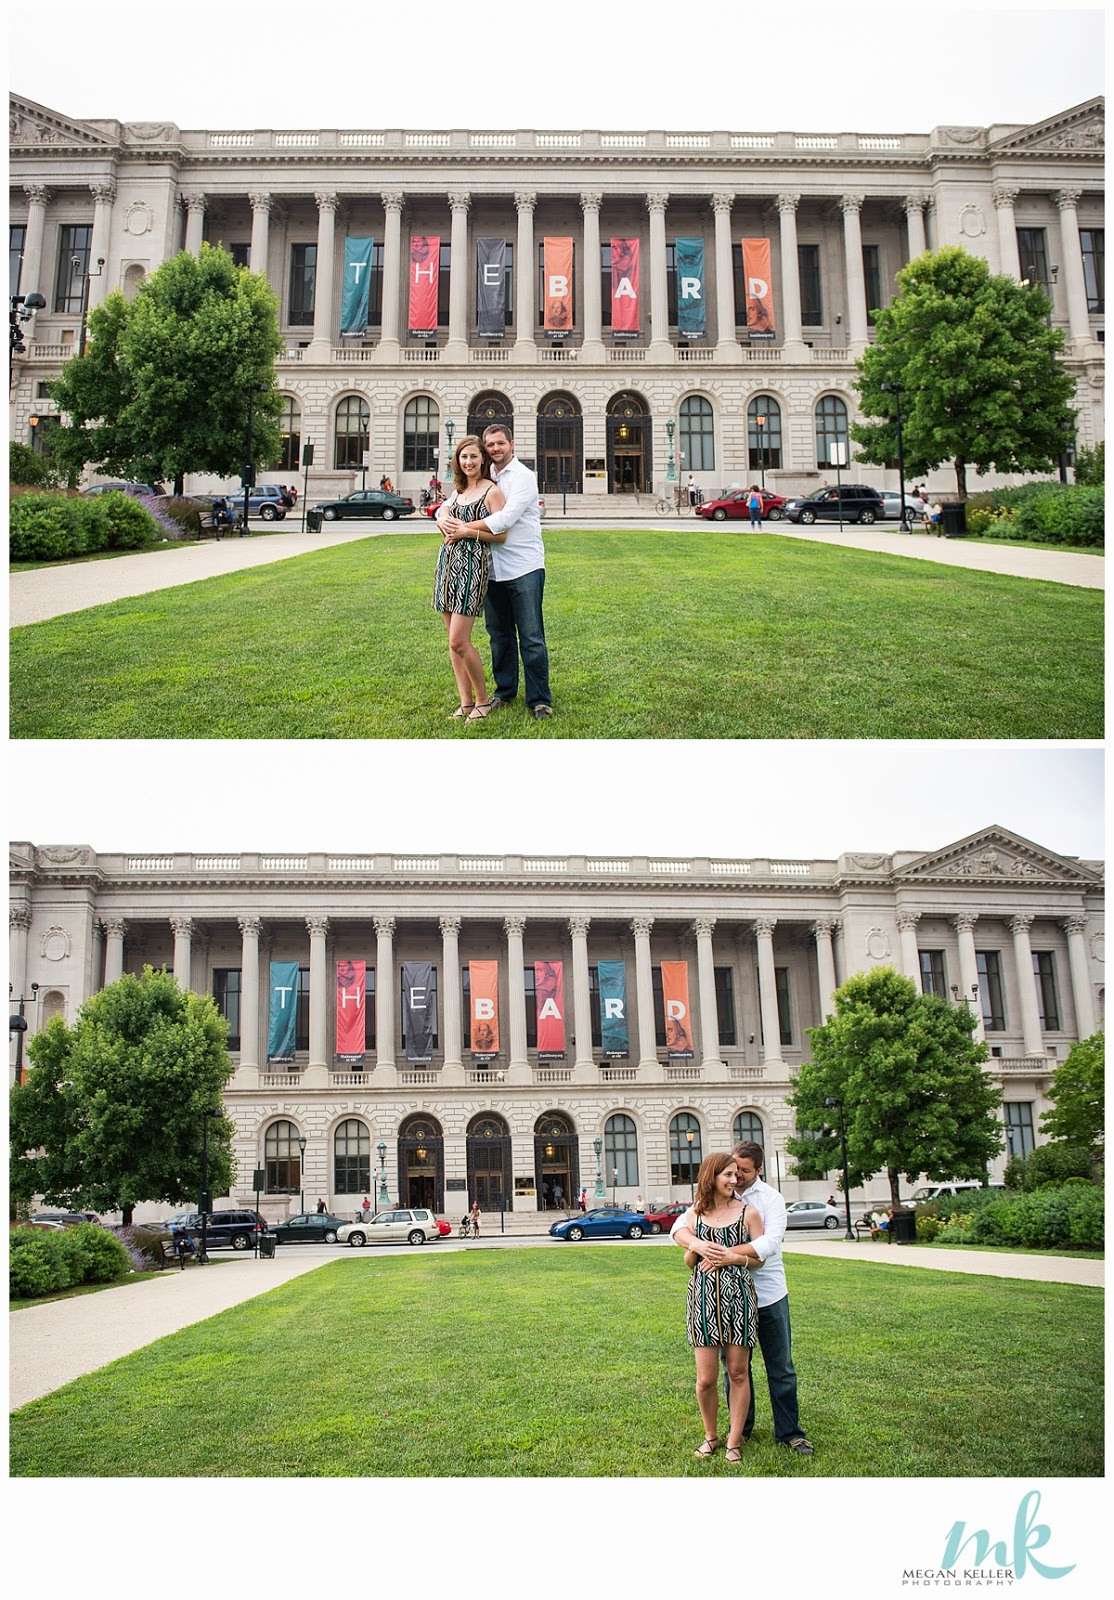 Kelly and Frank Engagement Session Kelly and Frank Engagement Session 2014 08 04 0002